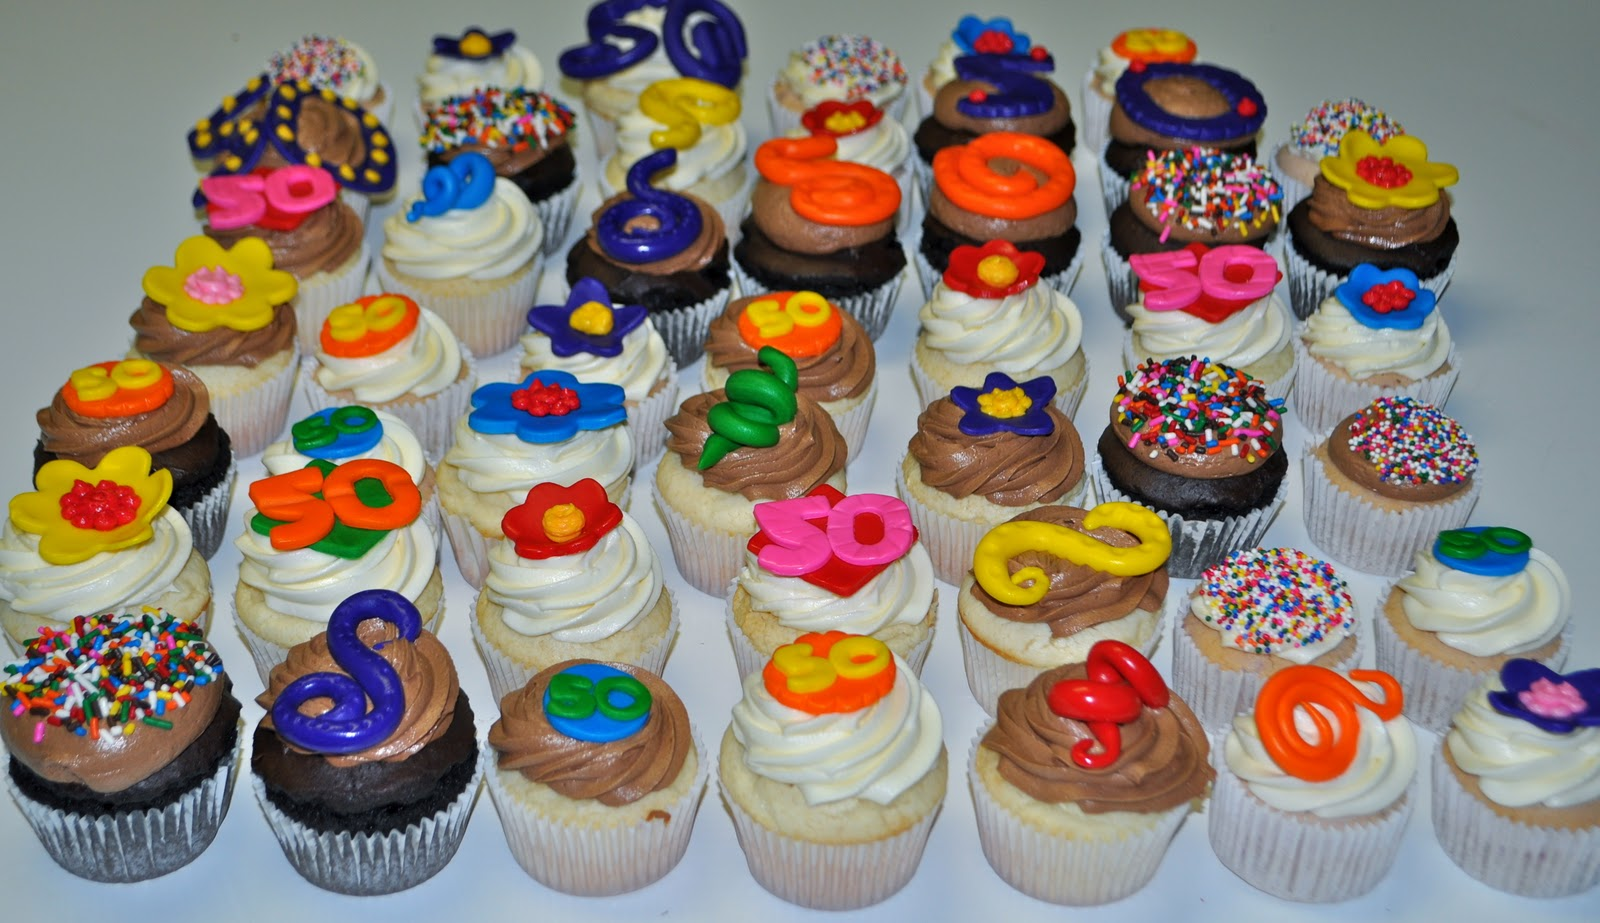 Cupcake Decorating Ideas For 50th Birthday : Coolest Cupcakes: 50th Birthday Cupcakes